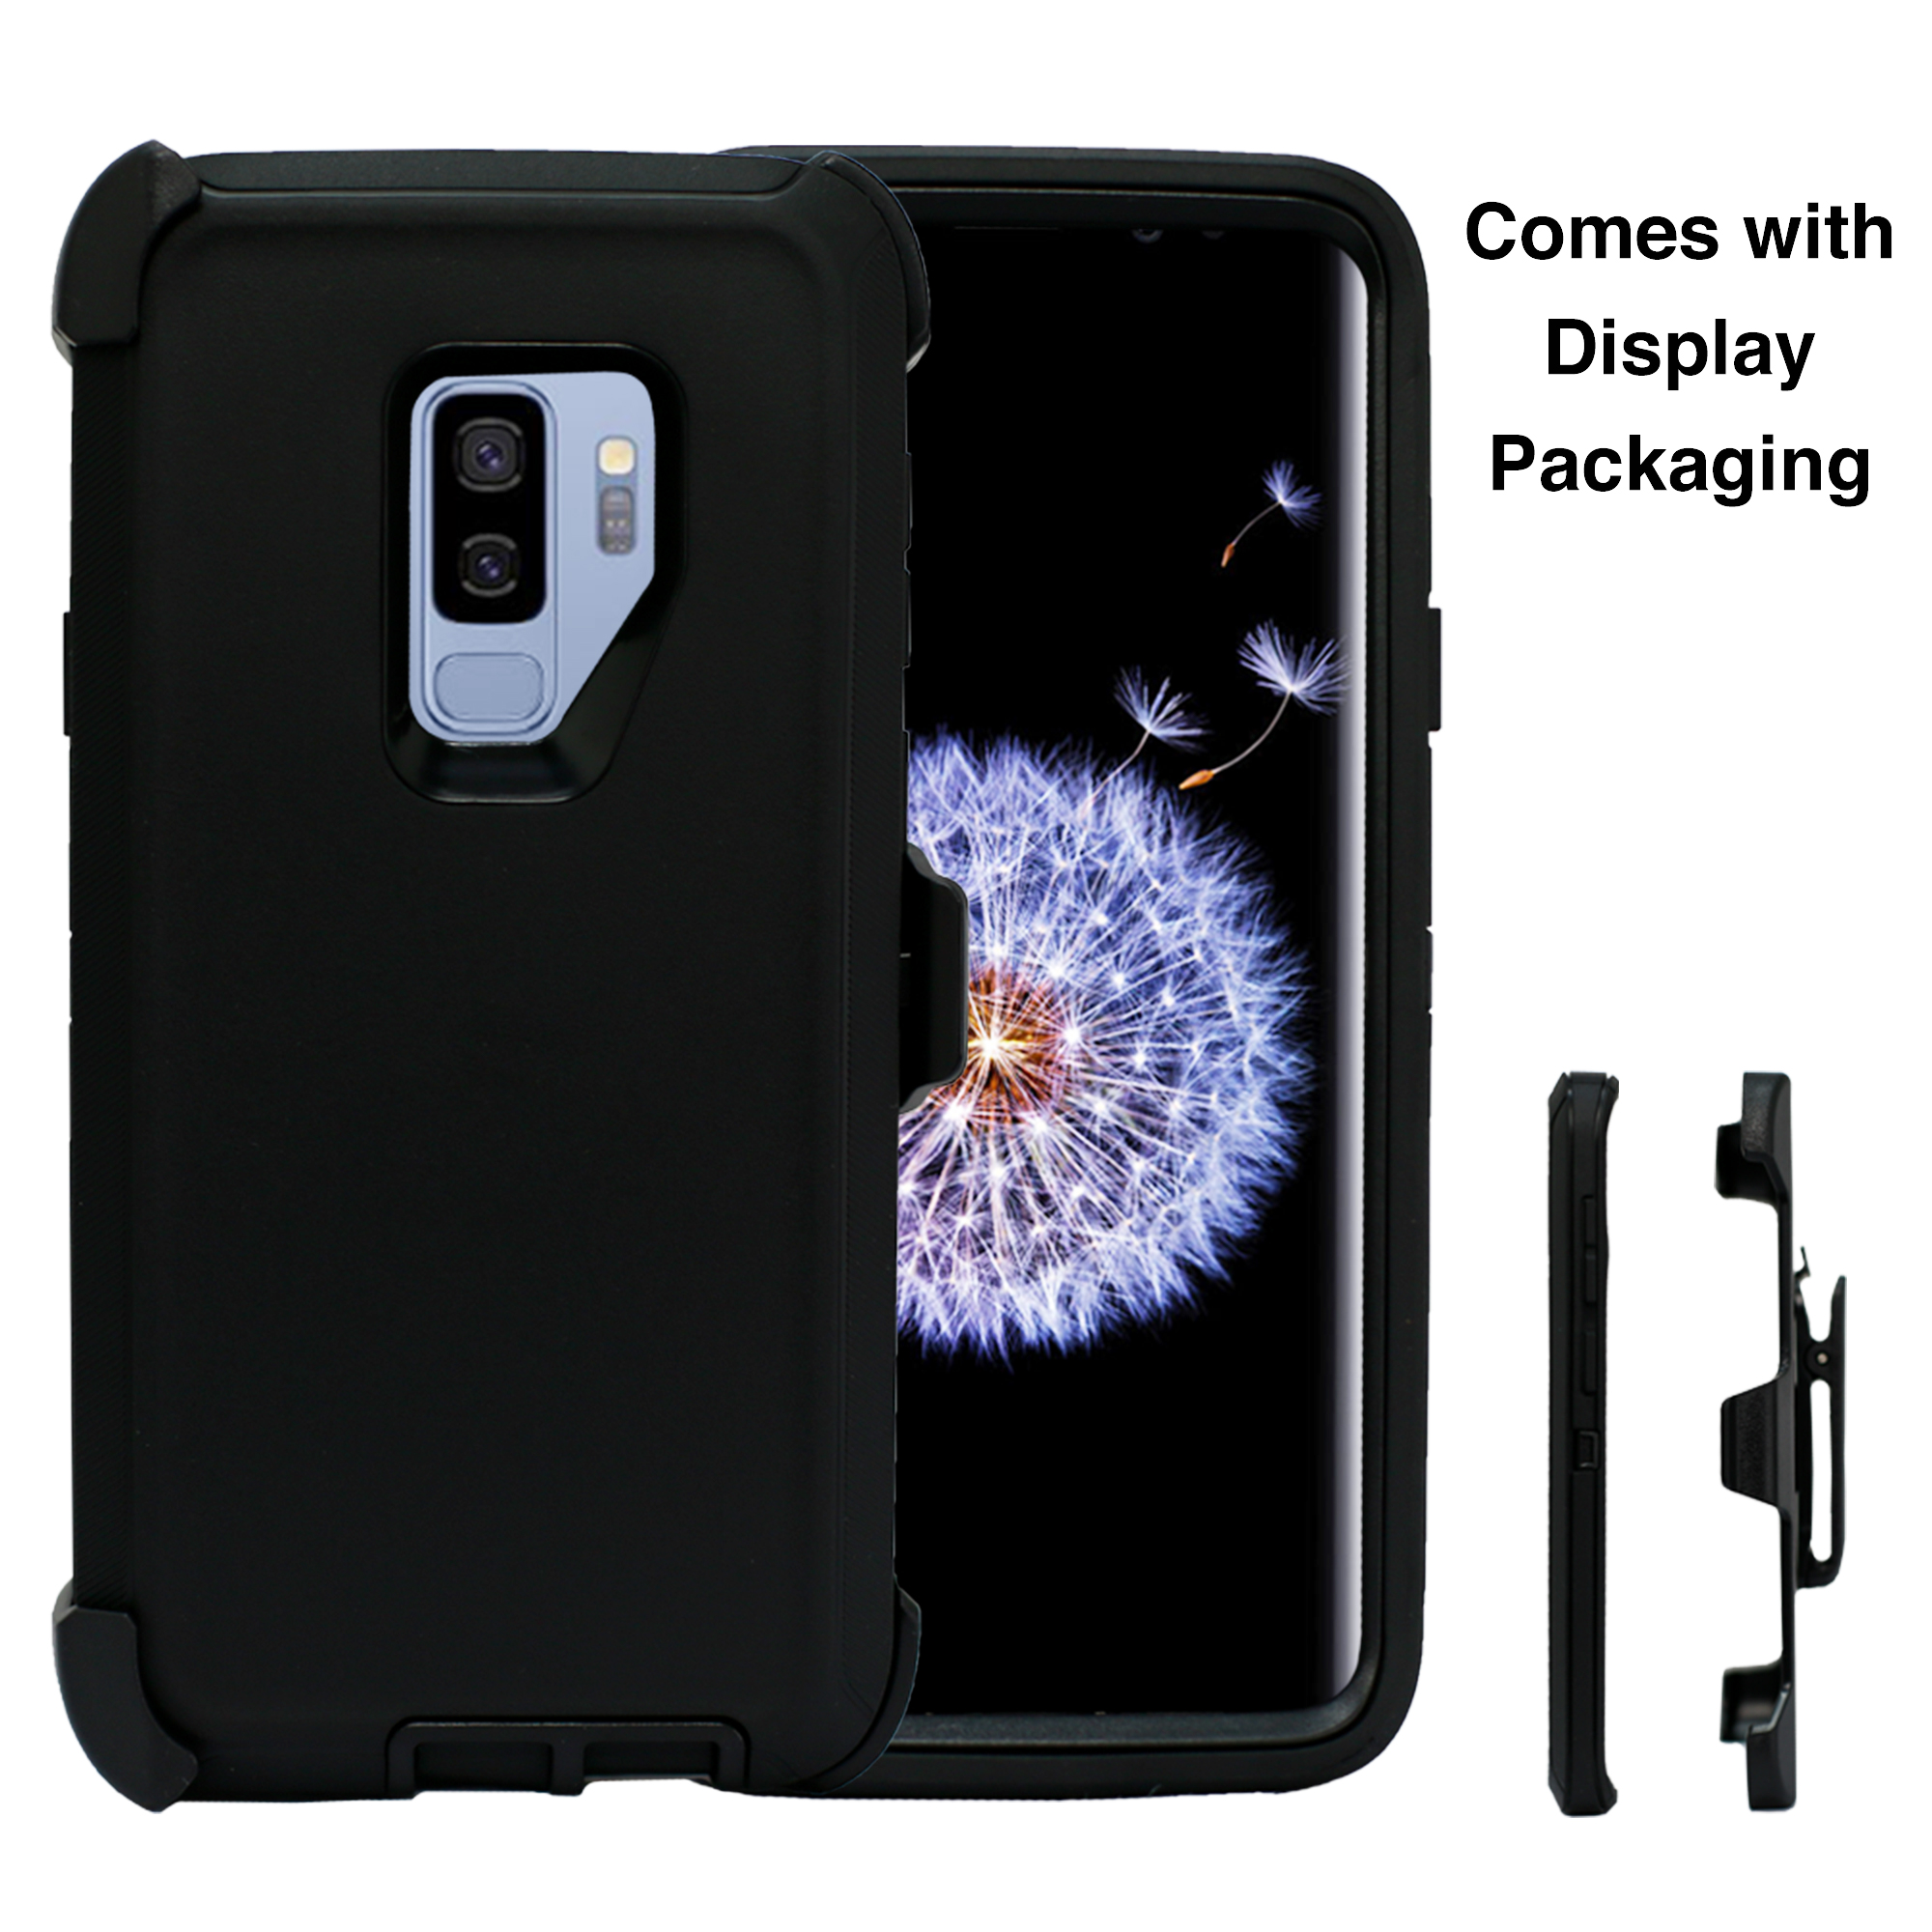 Heavy Duty Shock Reduction Case with Belt Clip (No Screen) for Galaxy S9 Plus (Black)